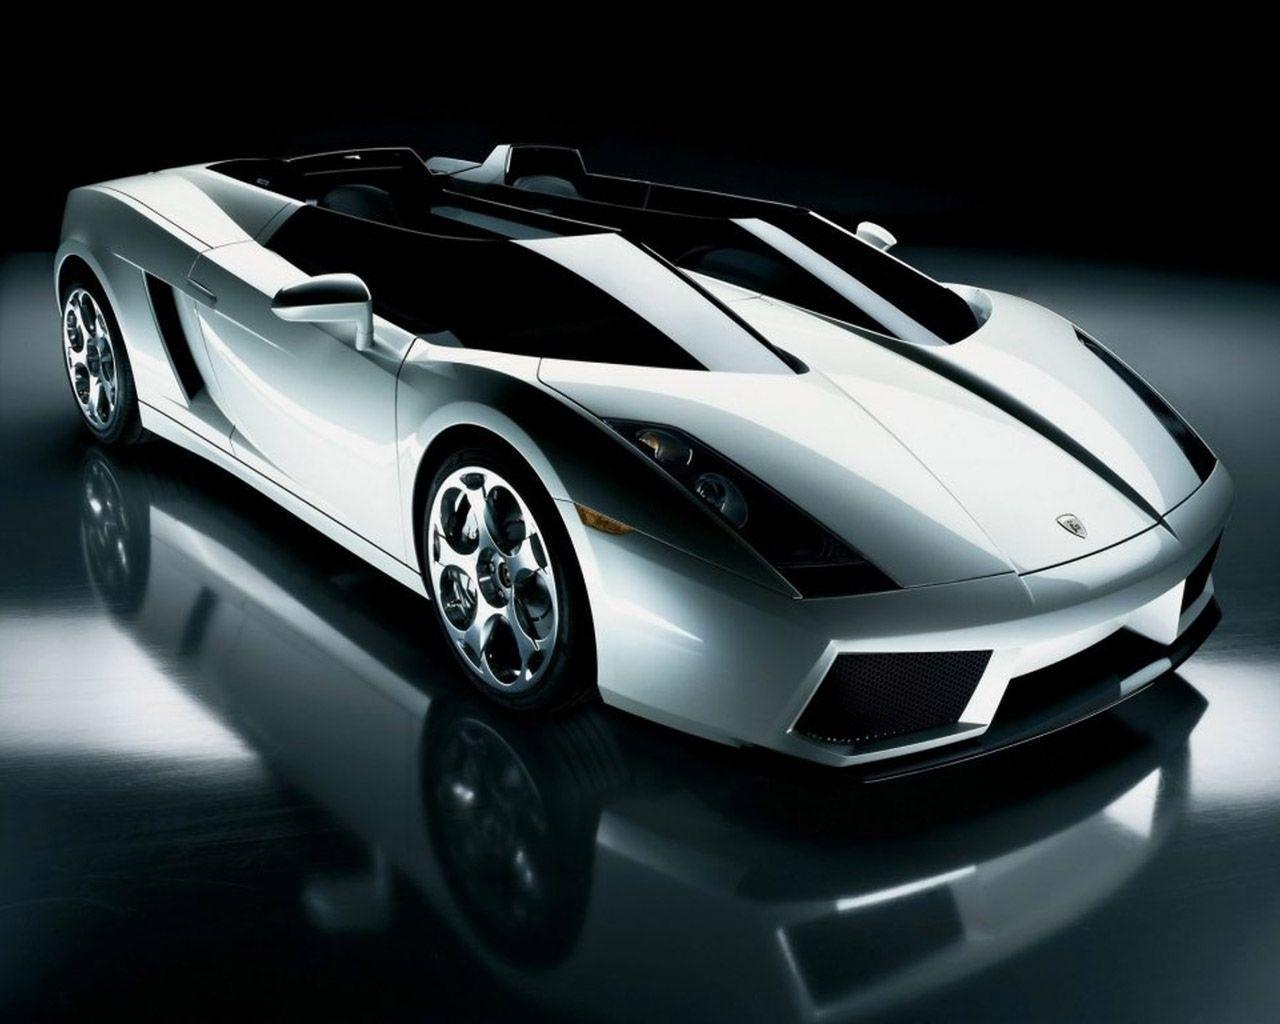 Cars Wallpapers - Dhoomwallpaper.com | Latest HD Wallpaper Collection